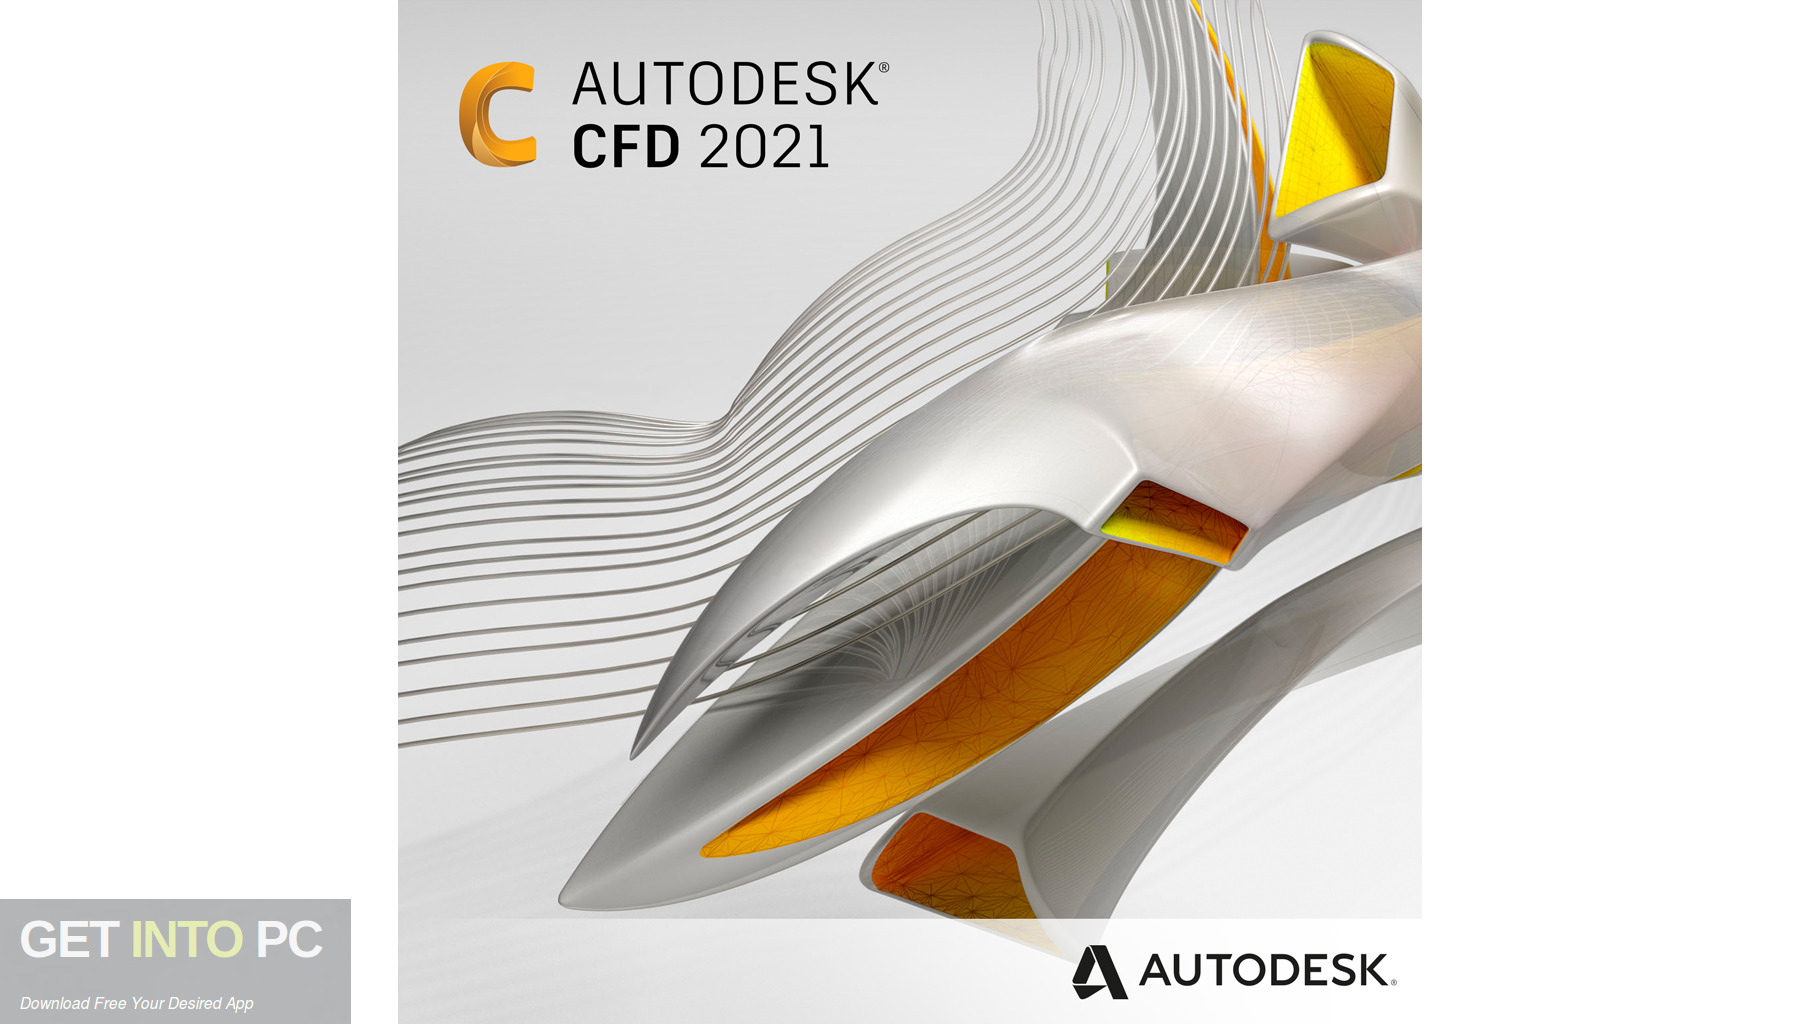 Autodesk CFD 2021 Ultimate Free Download PcHippo